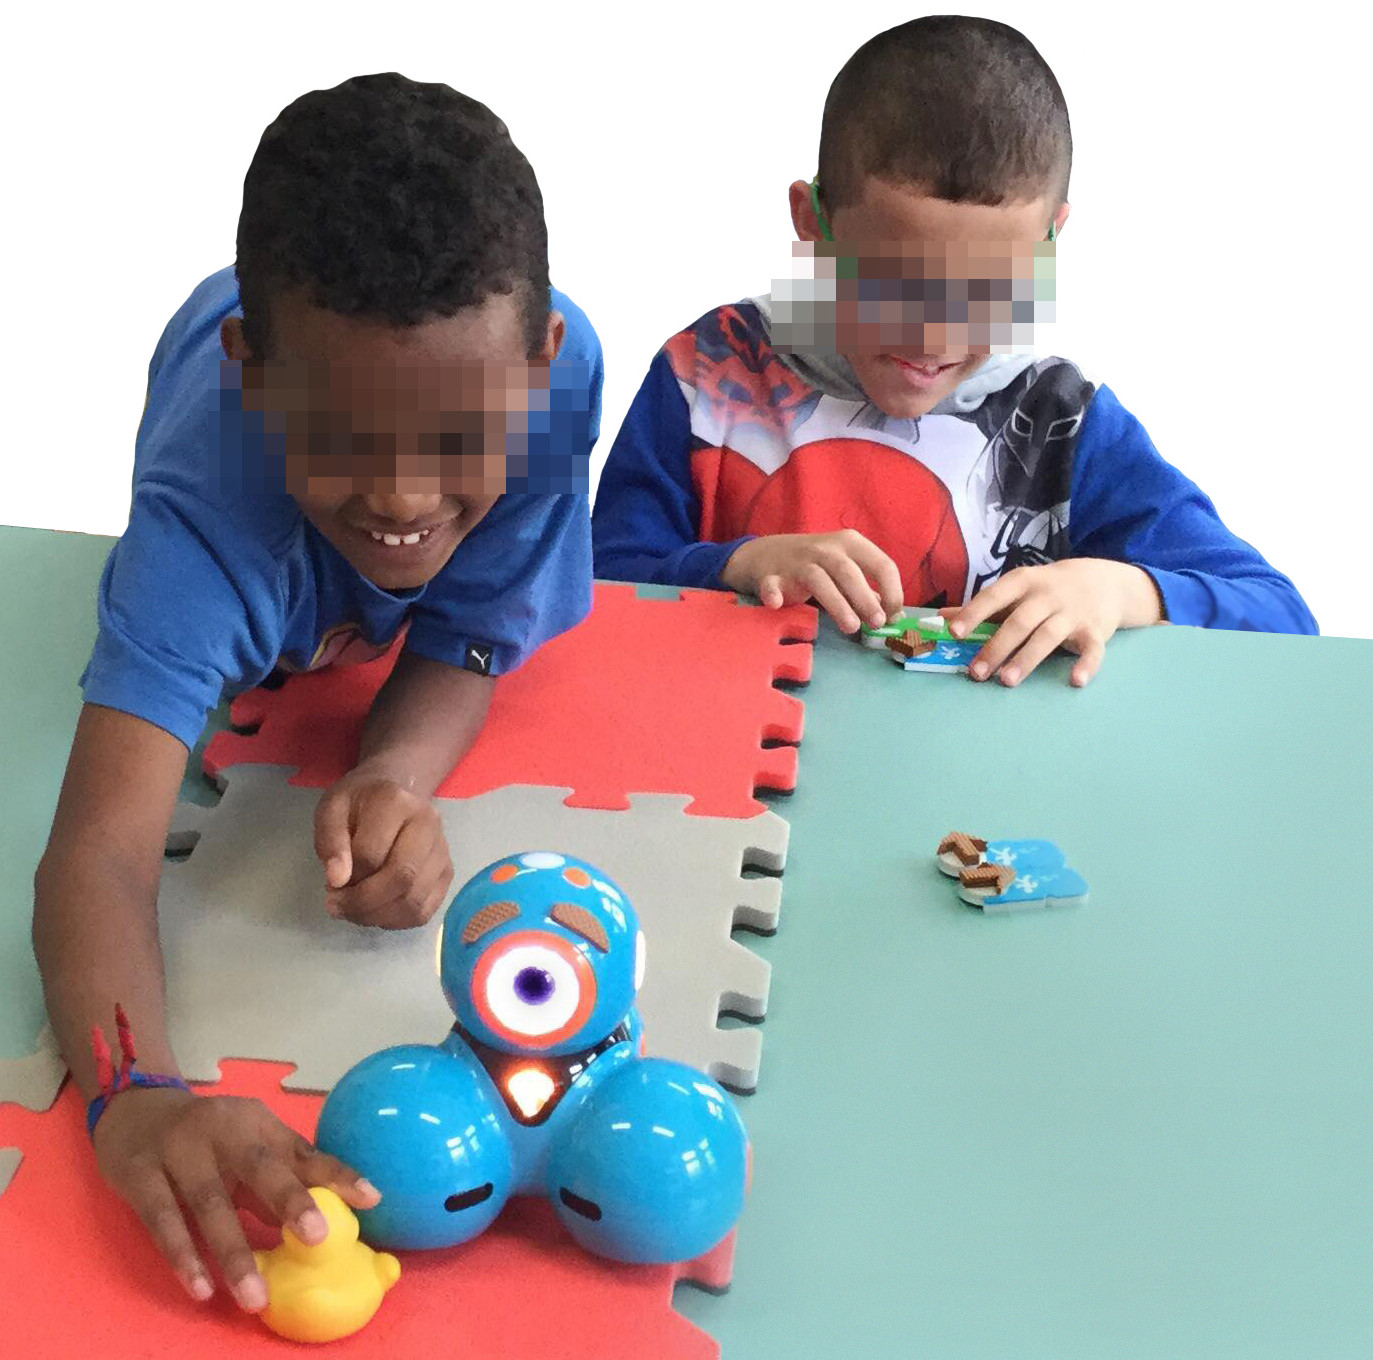 Photo taken from the Workshop with children. Two visually impaired children perform a goal-directed programming activity using a map located on the table. The activity consists of moving the robot to reach the duck. The map is made of 4 EVA foam tiles with two different colors. The child on the right is concentrated in arranging the blocks while the children at the left are touching the duck after the robot reached the duck. This child is smiling and has much of his body on the table.